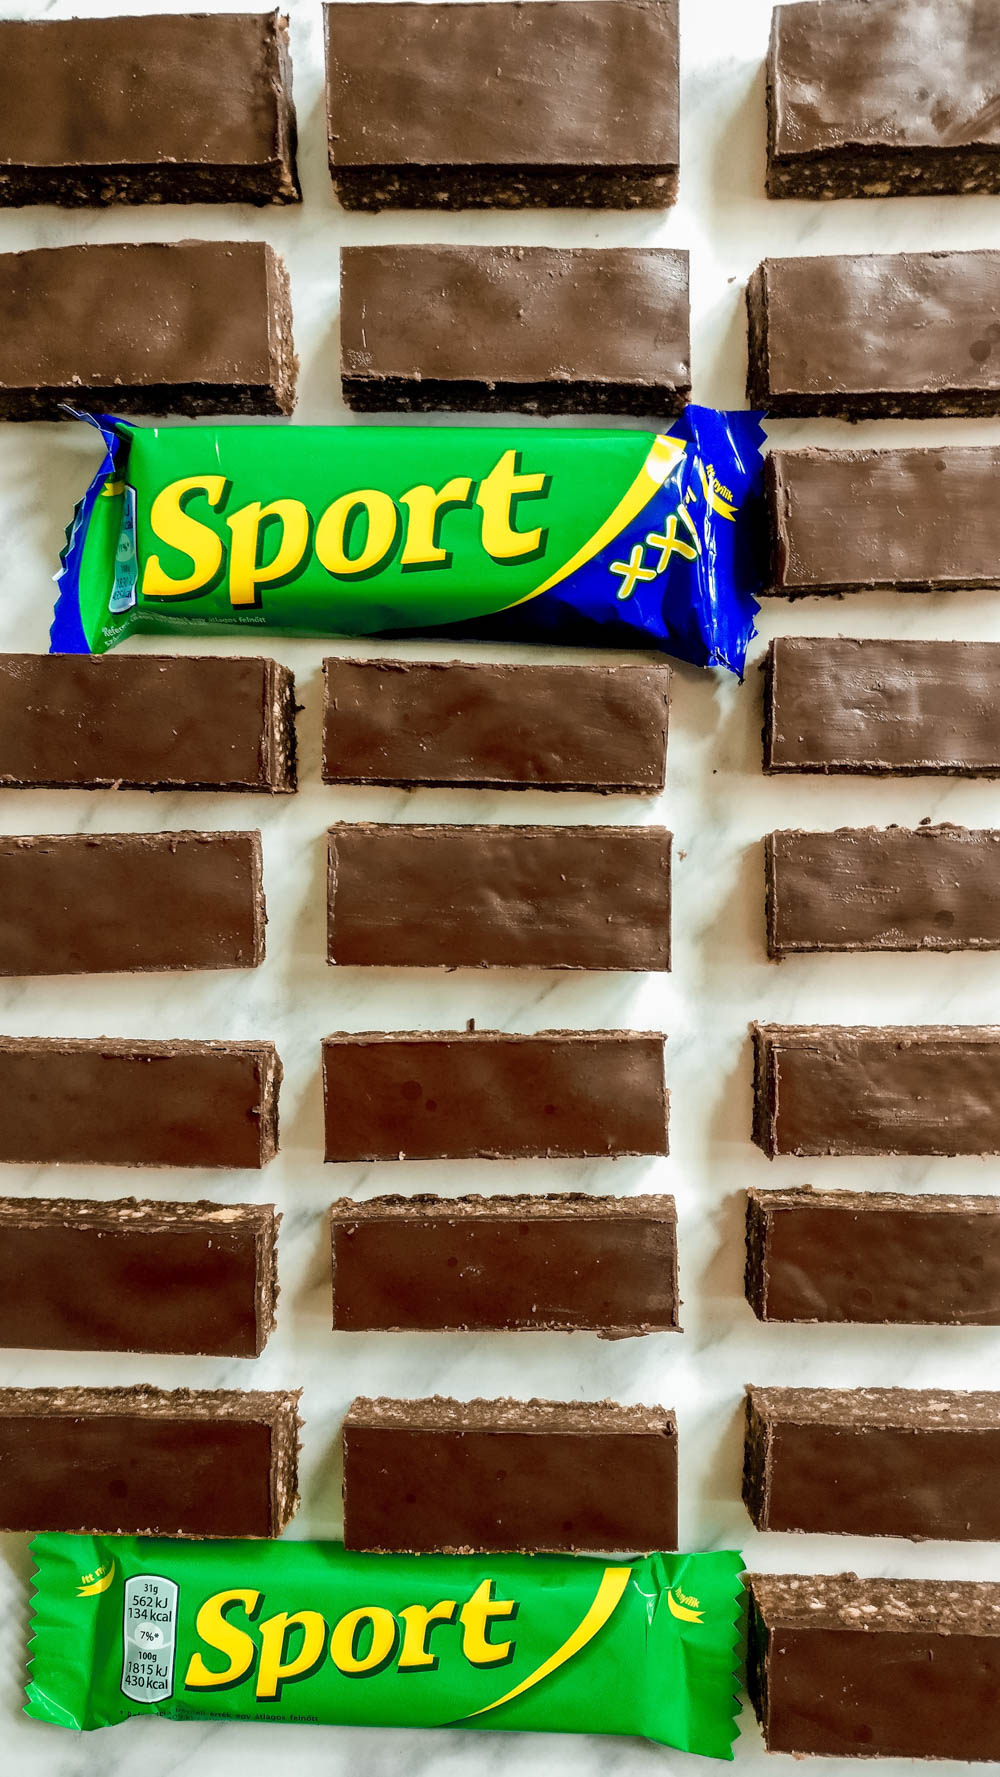 Sport szelet, the Hungarian chocolate bar recipe | Aliz's Wonderland